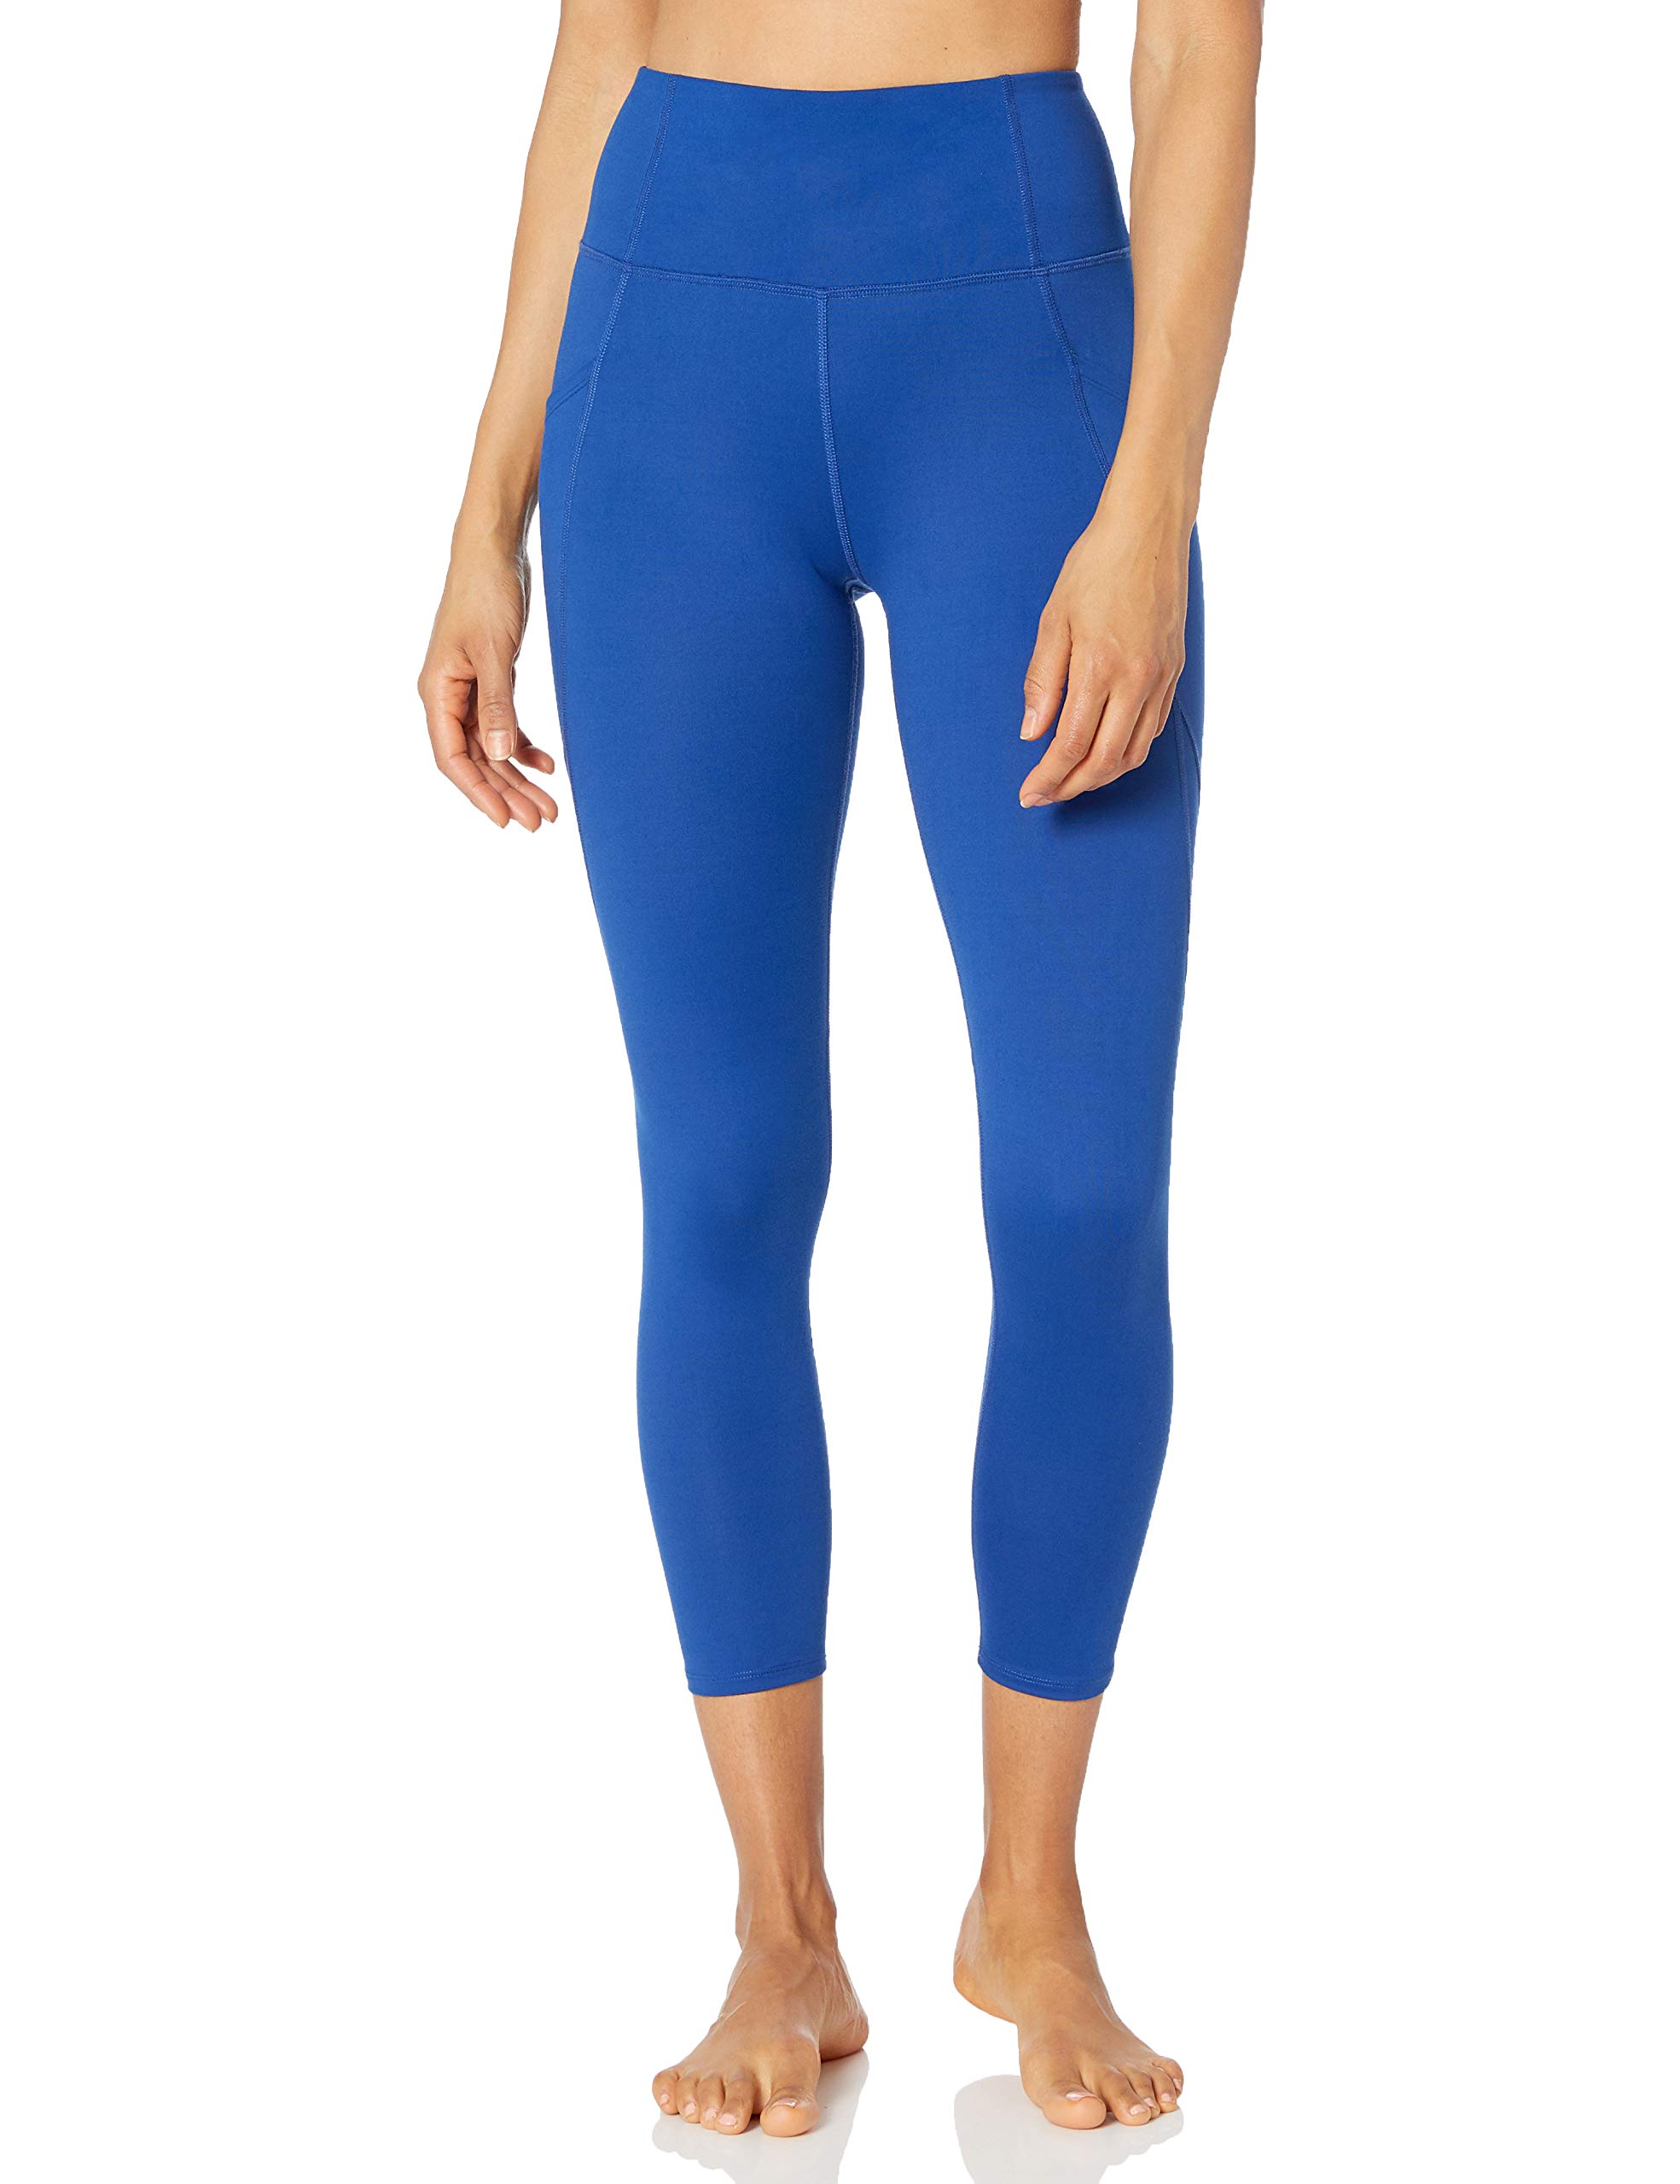 """Amazon Brand - Core 10 Women's (XS-3X) All Day Comfort High Waist Yoga 7/8 Crop Legging with Side Pockets - 24"""""""